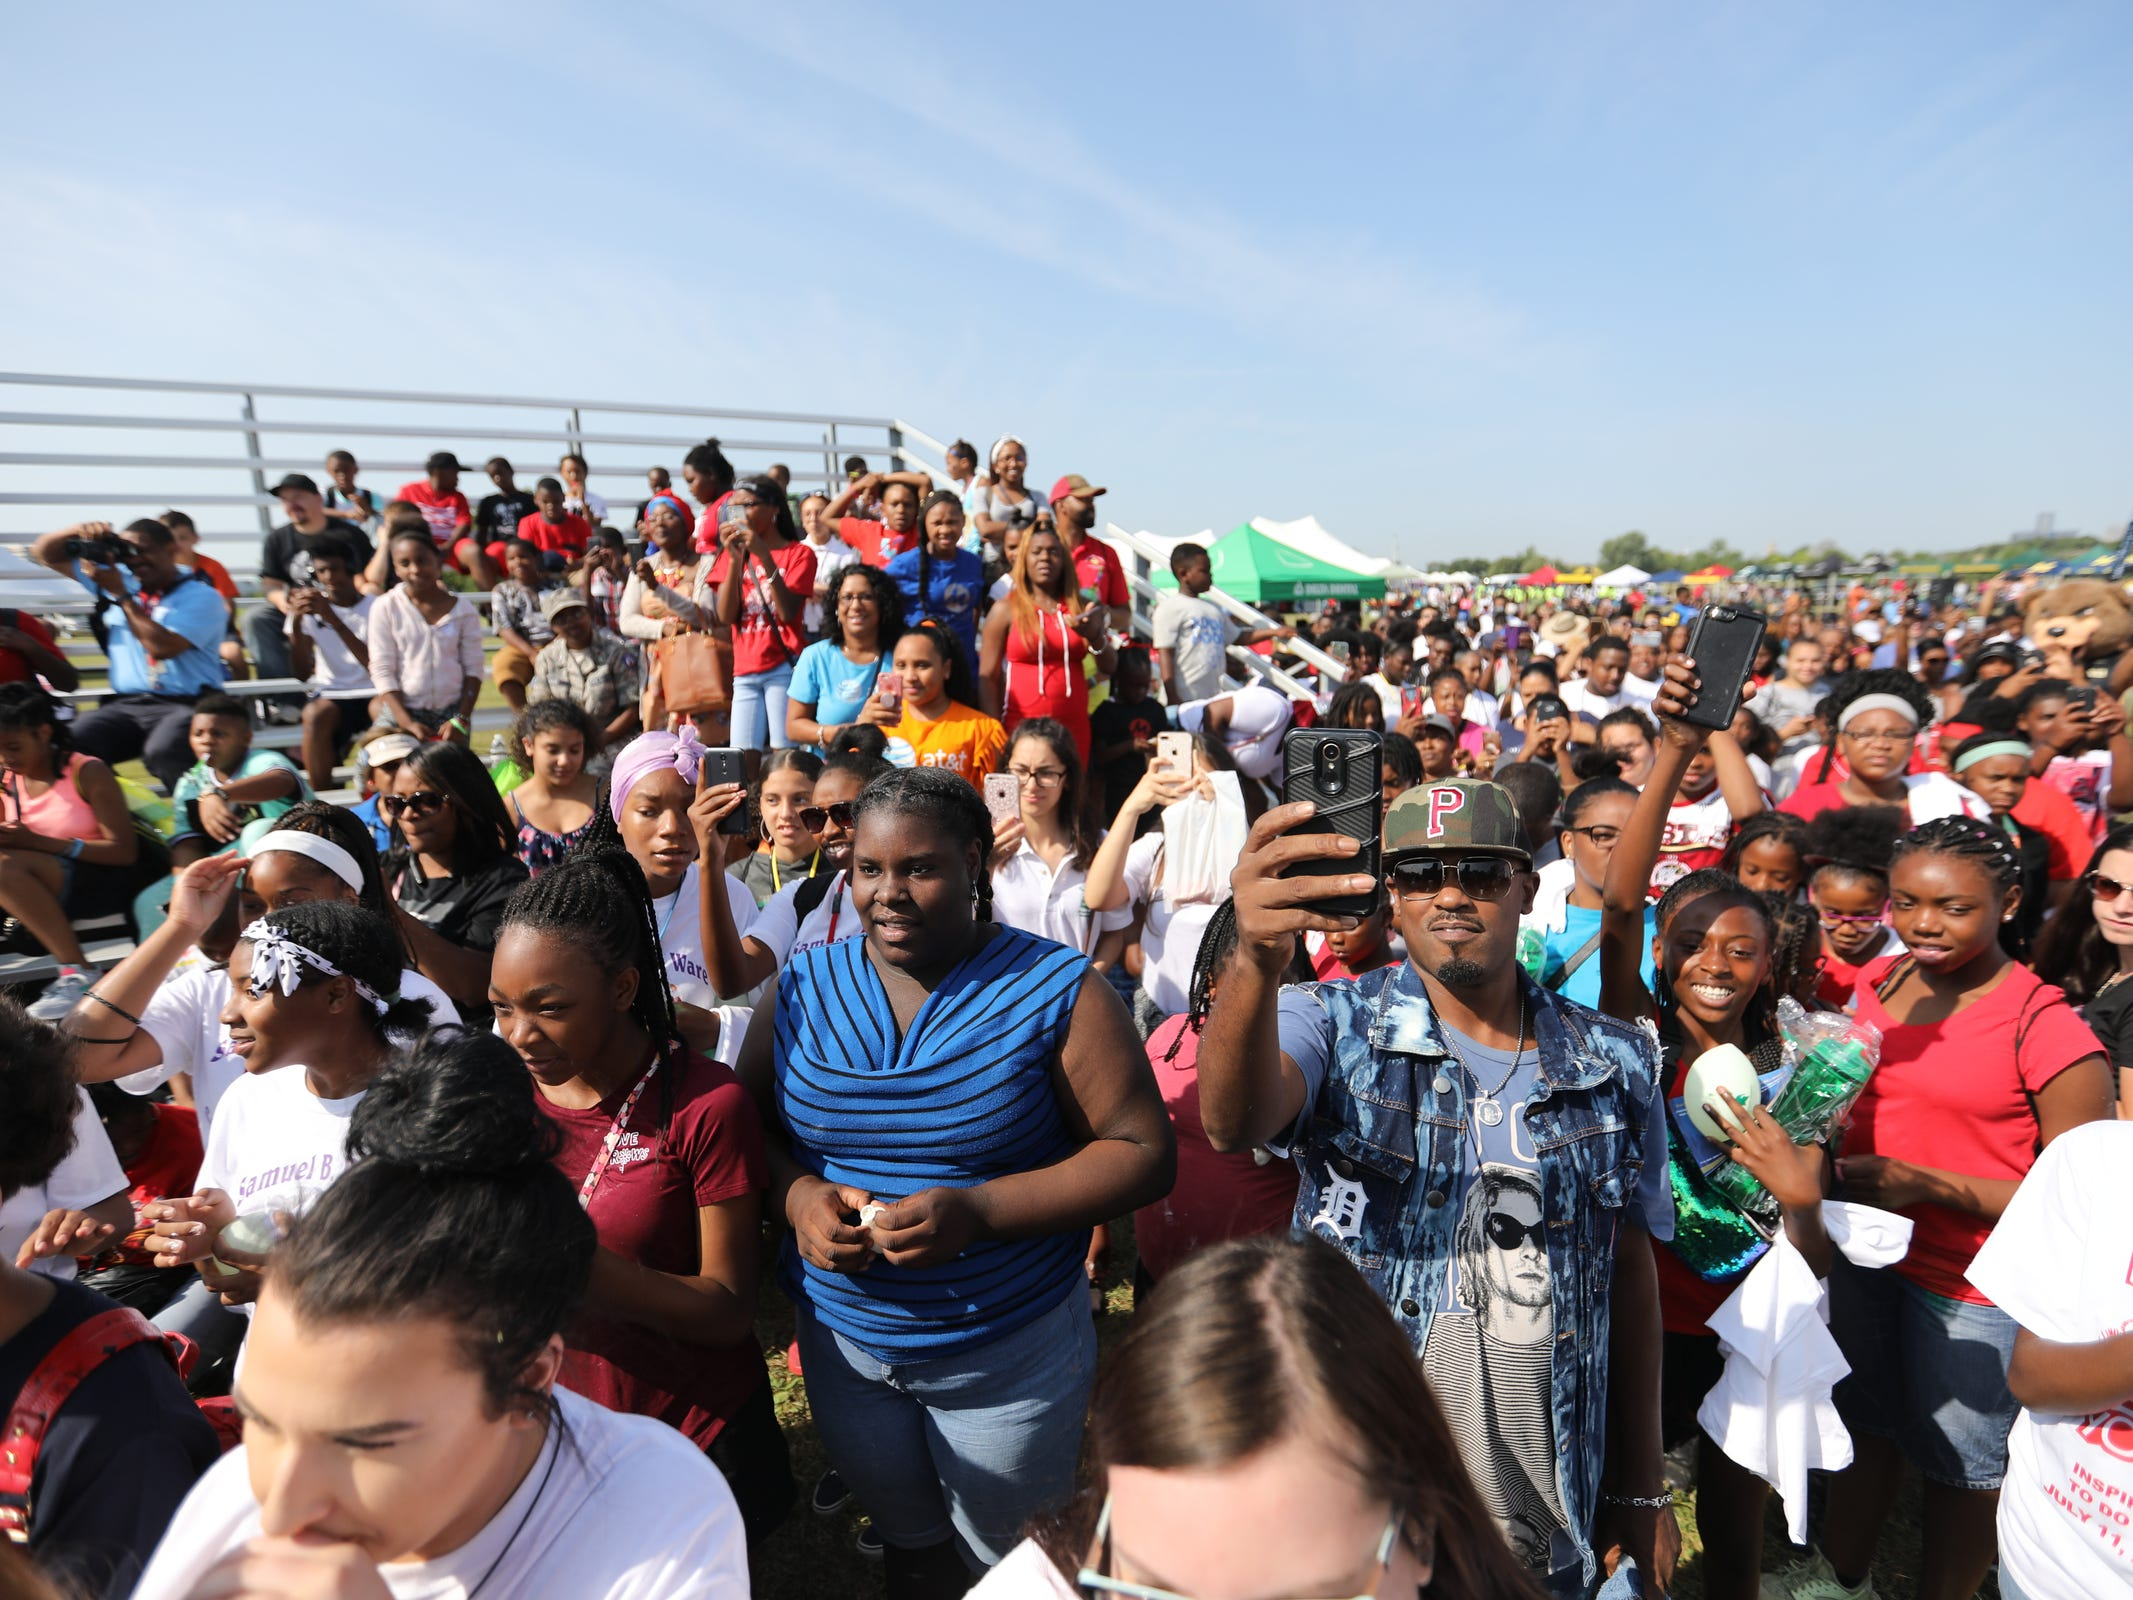 Crowds gather to see entertainer Ice Cube during Metro Detroit Youth Day at Belle Isle in Detroit on Wednesday, July 11, 2018.